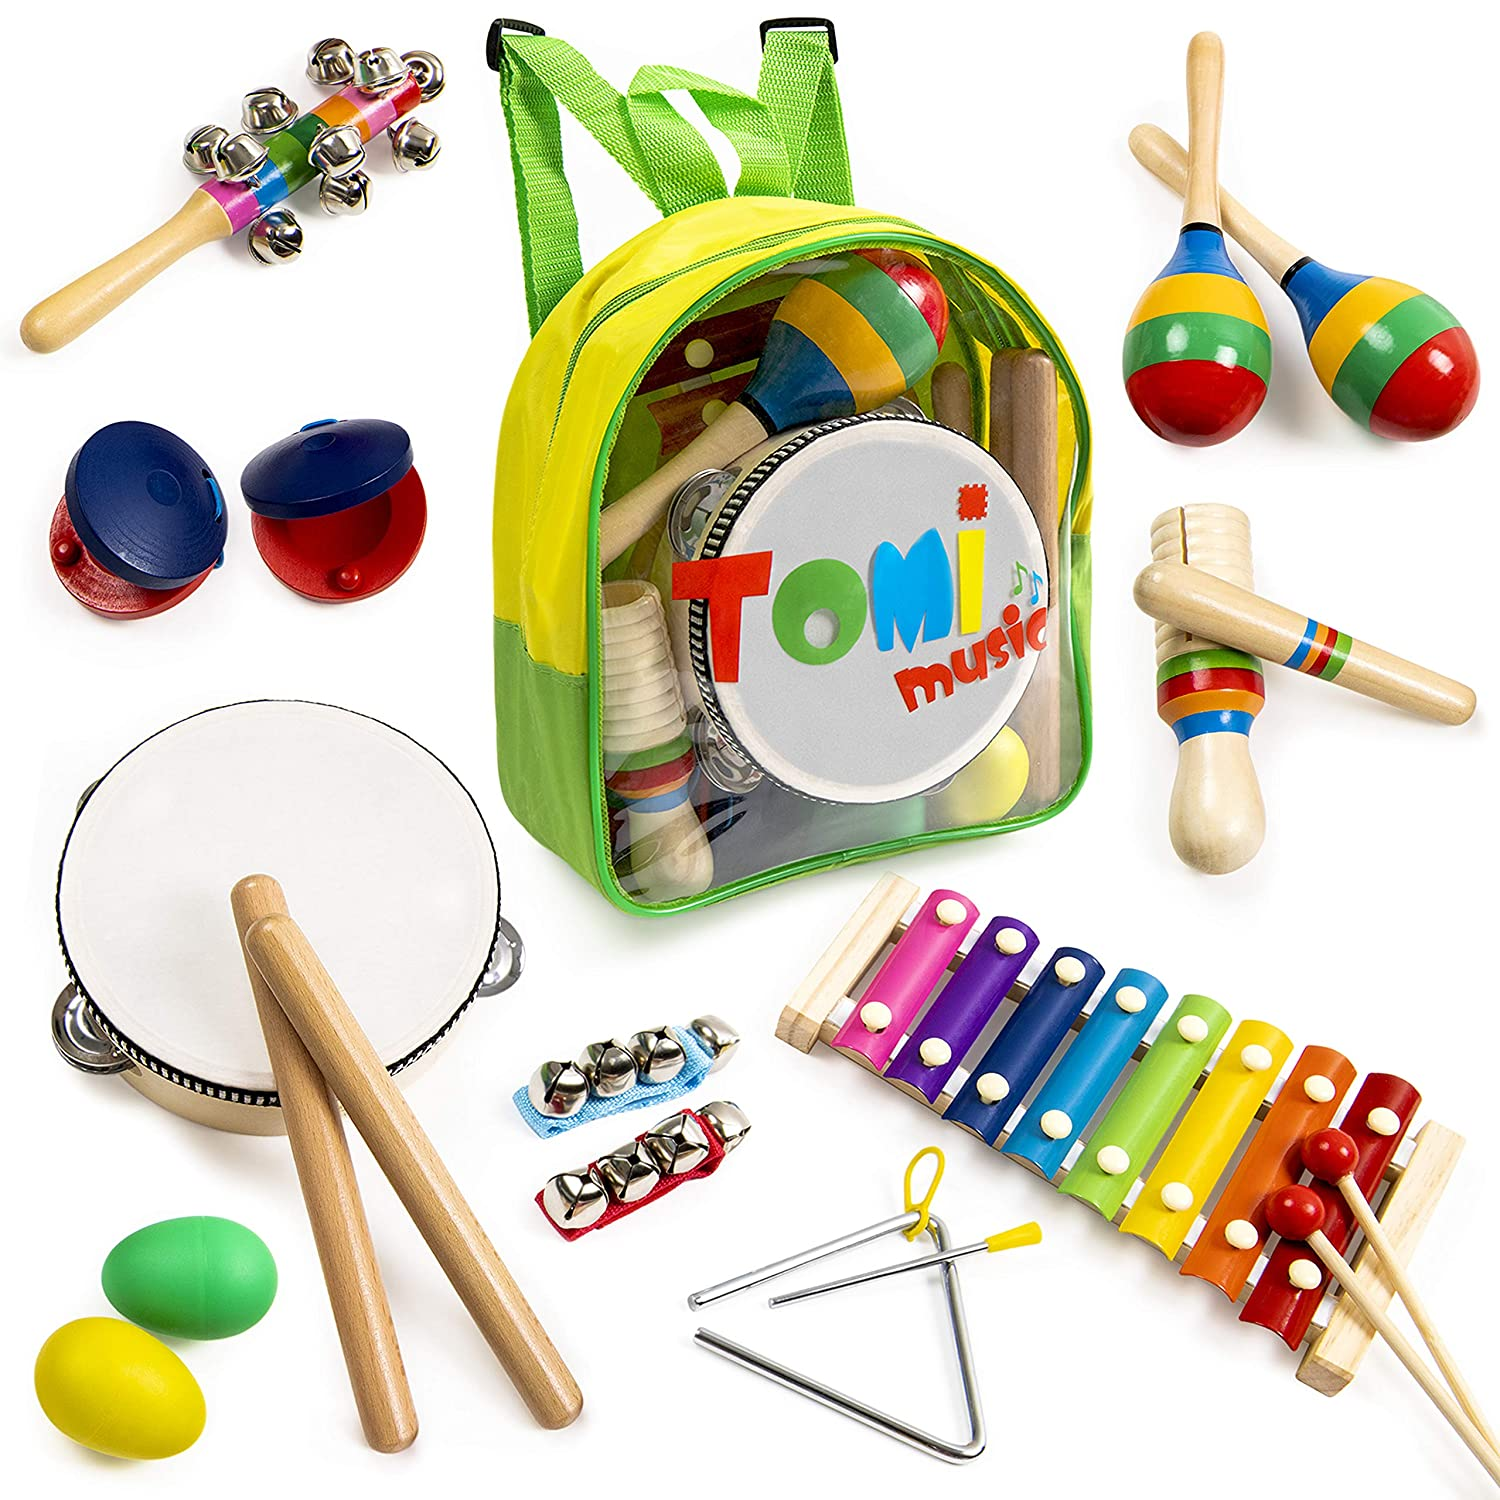 18 pcs Musical Instruments Set for Toddler and Preschool Kids – Tomi Music Toy - Wooden Percussion Toys for Boys and Girls Includes Xylophone - Promotes Early Development and Educational Learning. Tomi toys